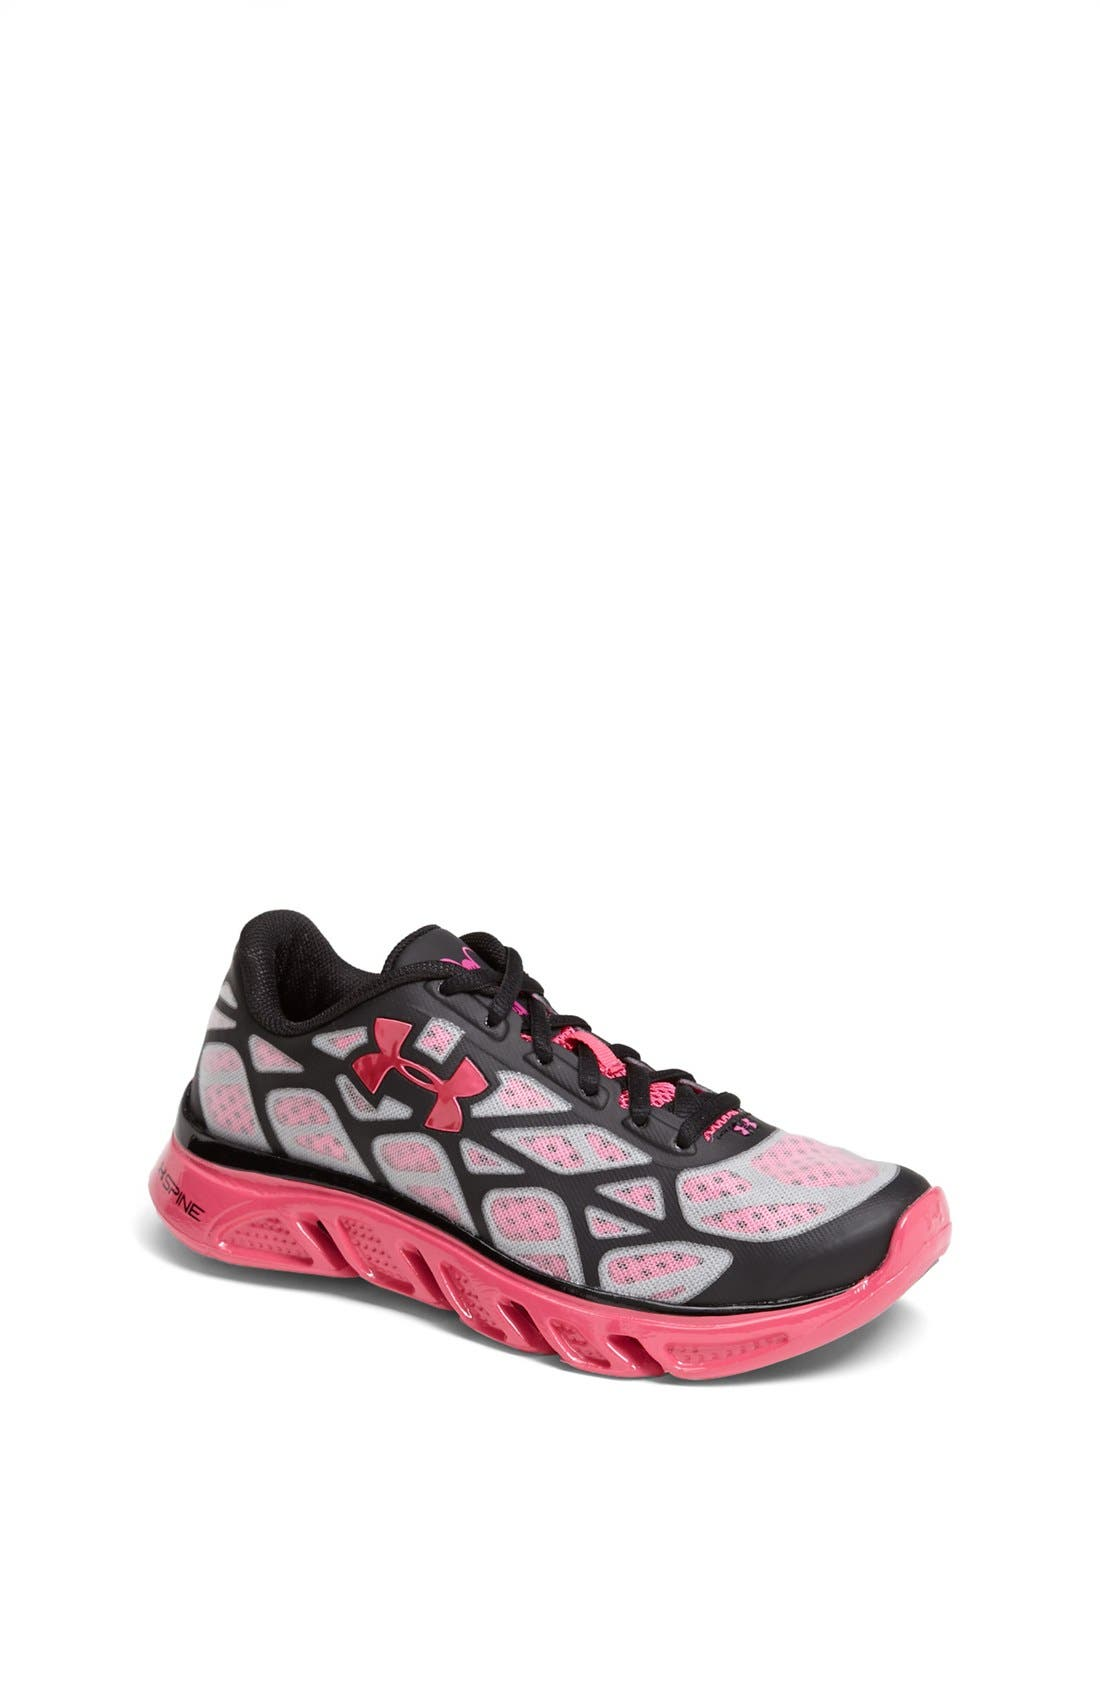 Main Image - Under Armour 'Spine™ Vice Breast Cancer Awareness' Athletic Shoe (Big Kid)